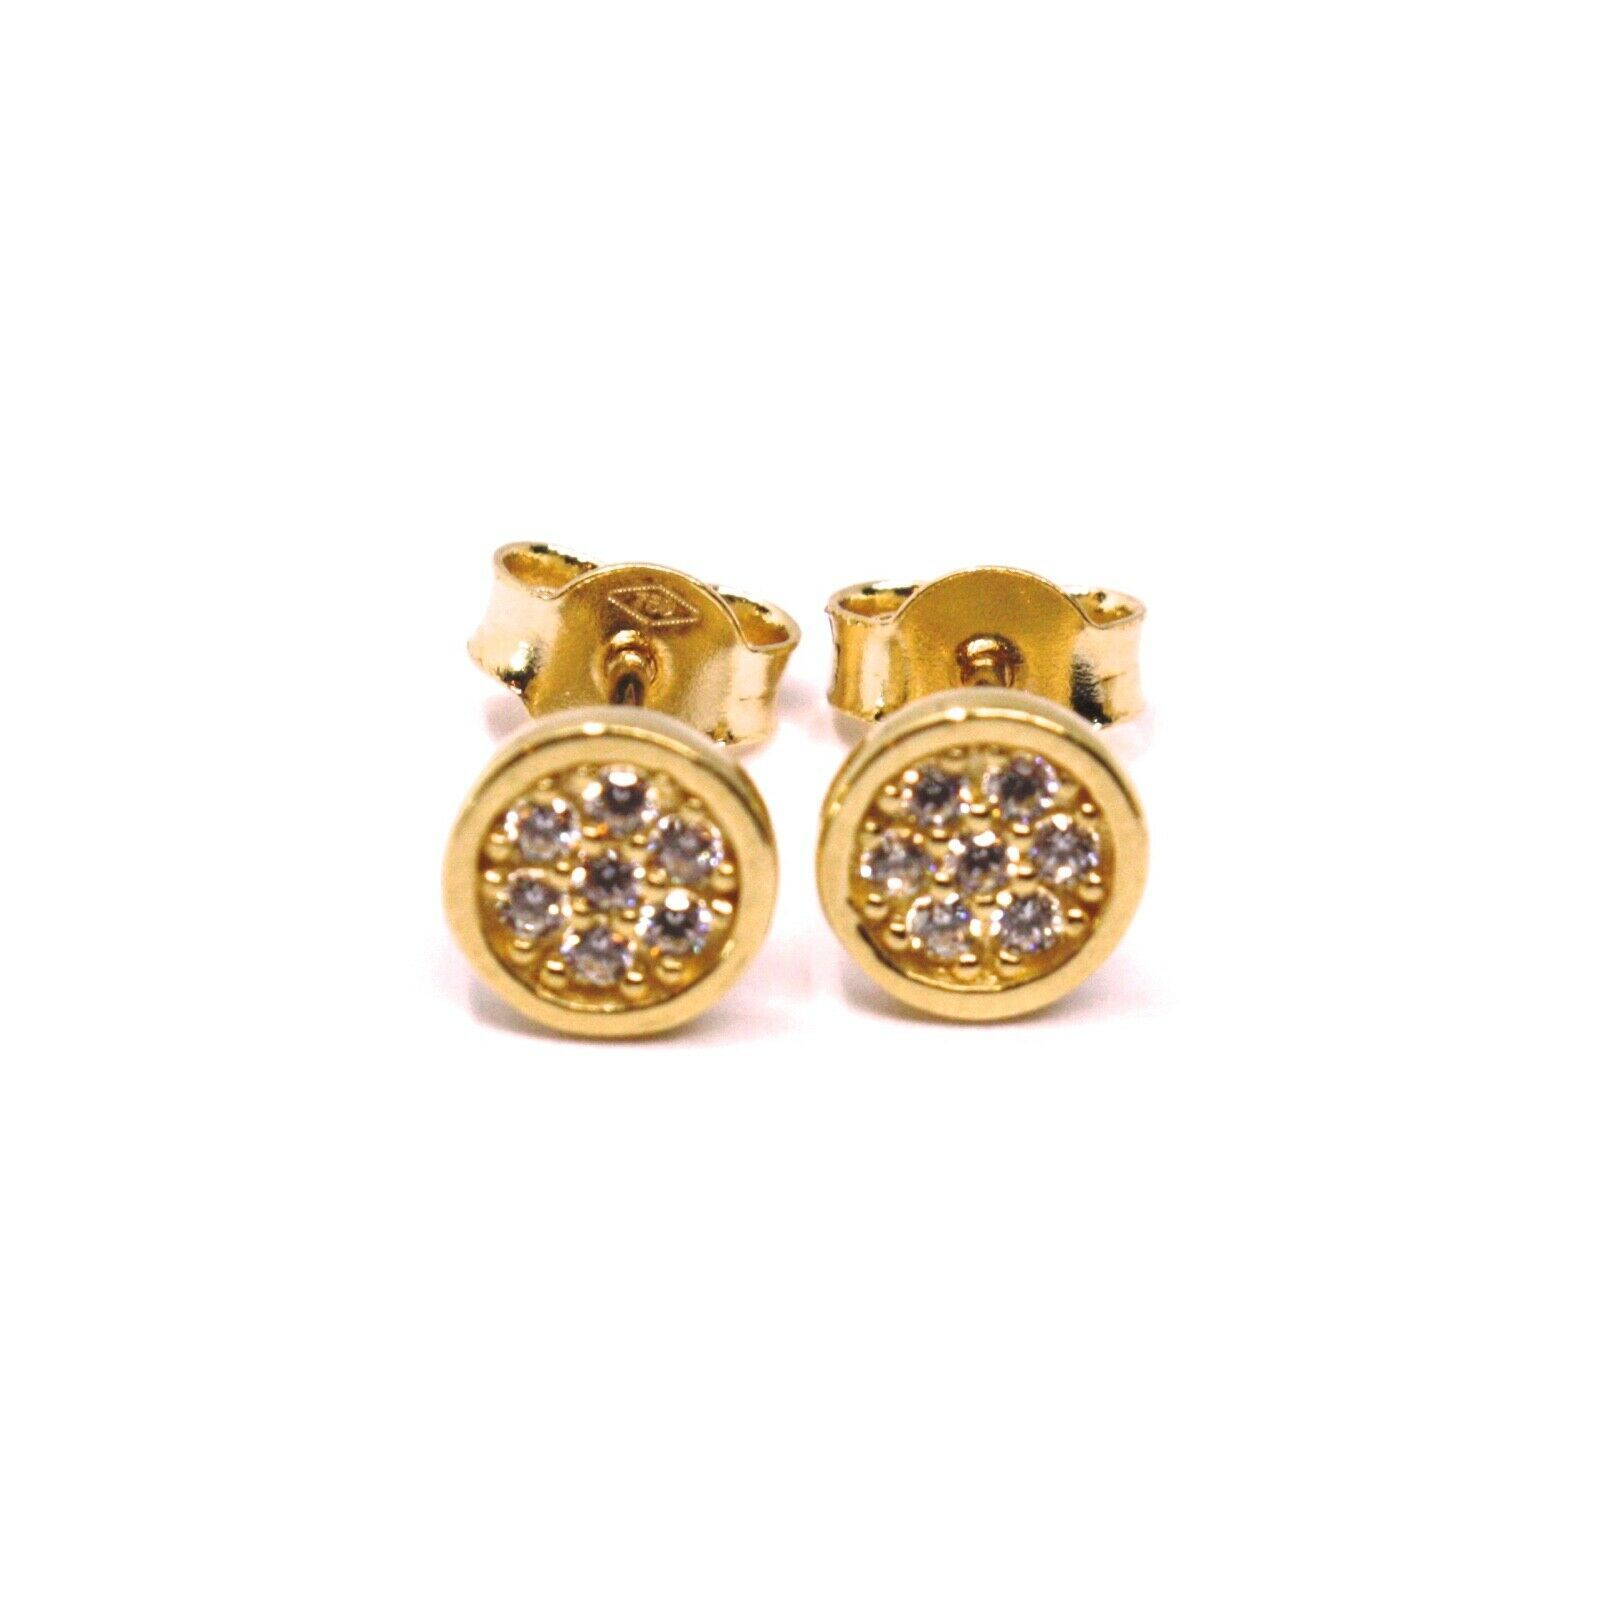 18K ROSE GOLD MINI BUTTON EARRINGS WITH CUBIC ZIRCONIA, DISC FLOWER, 6 MM